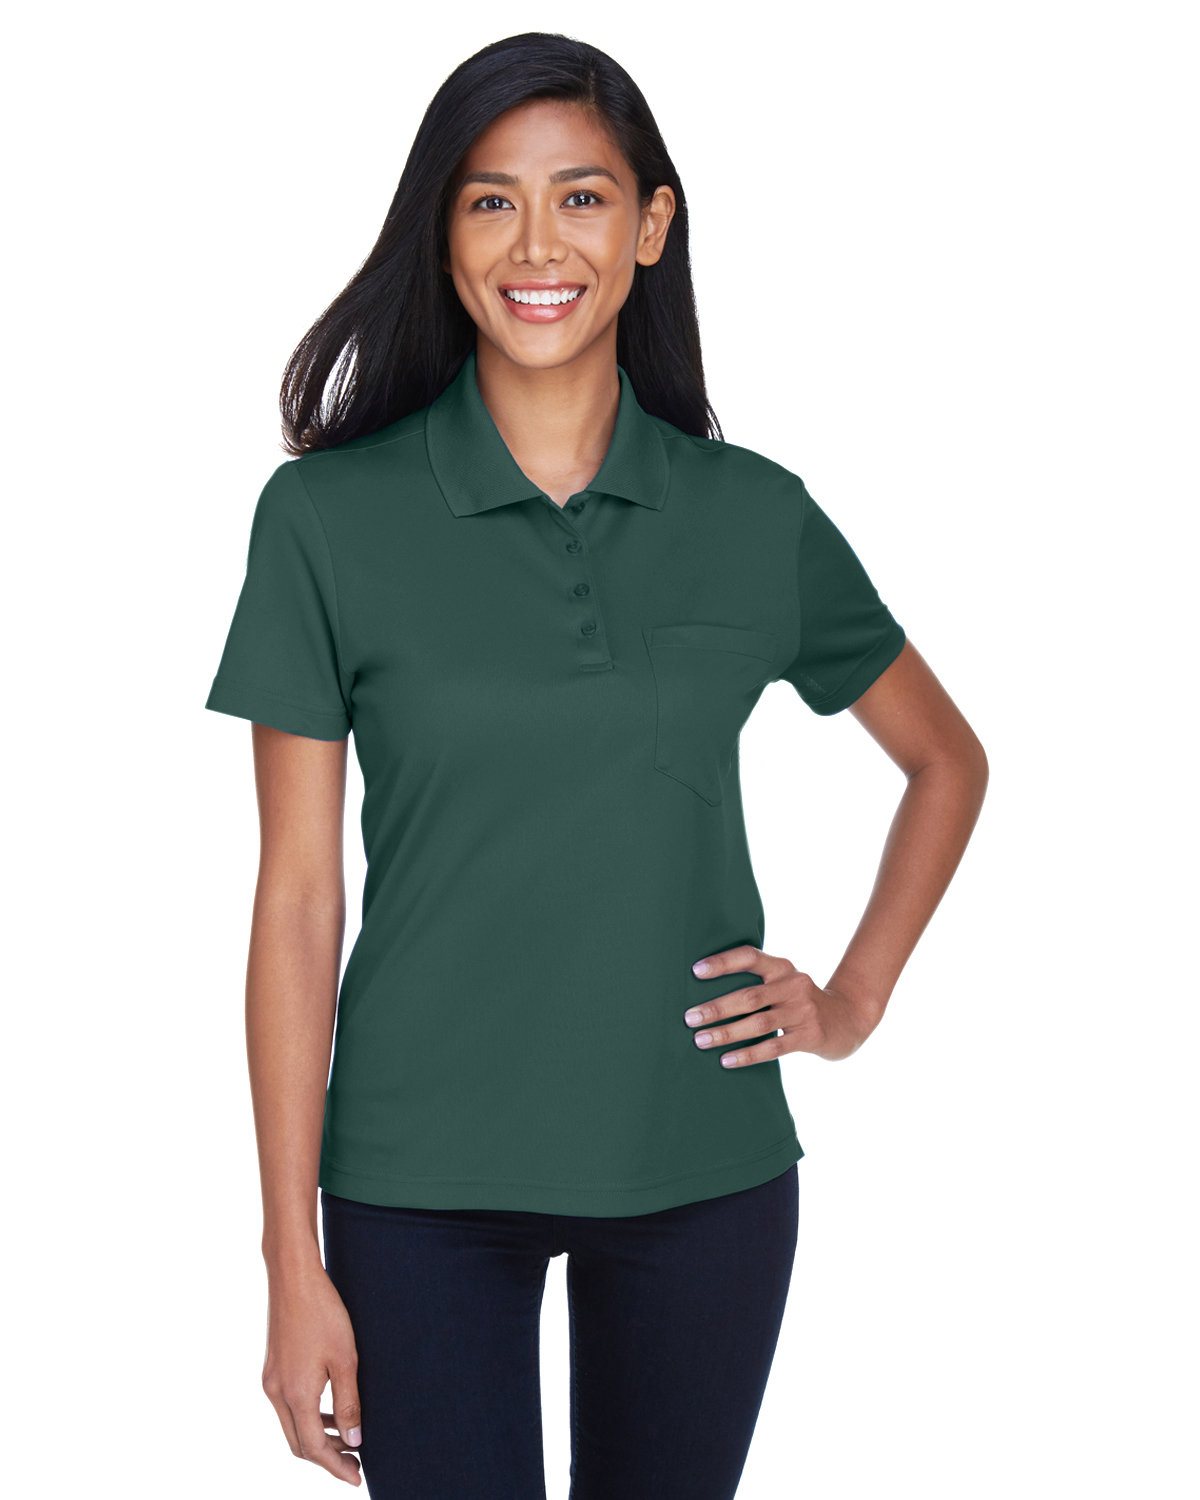 Core 365 Ladies' Origin Performance Piqué Polo with Pocket FOREST